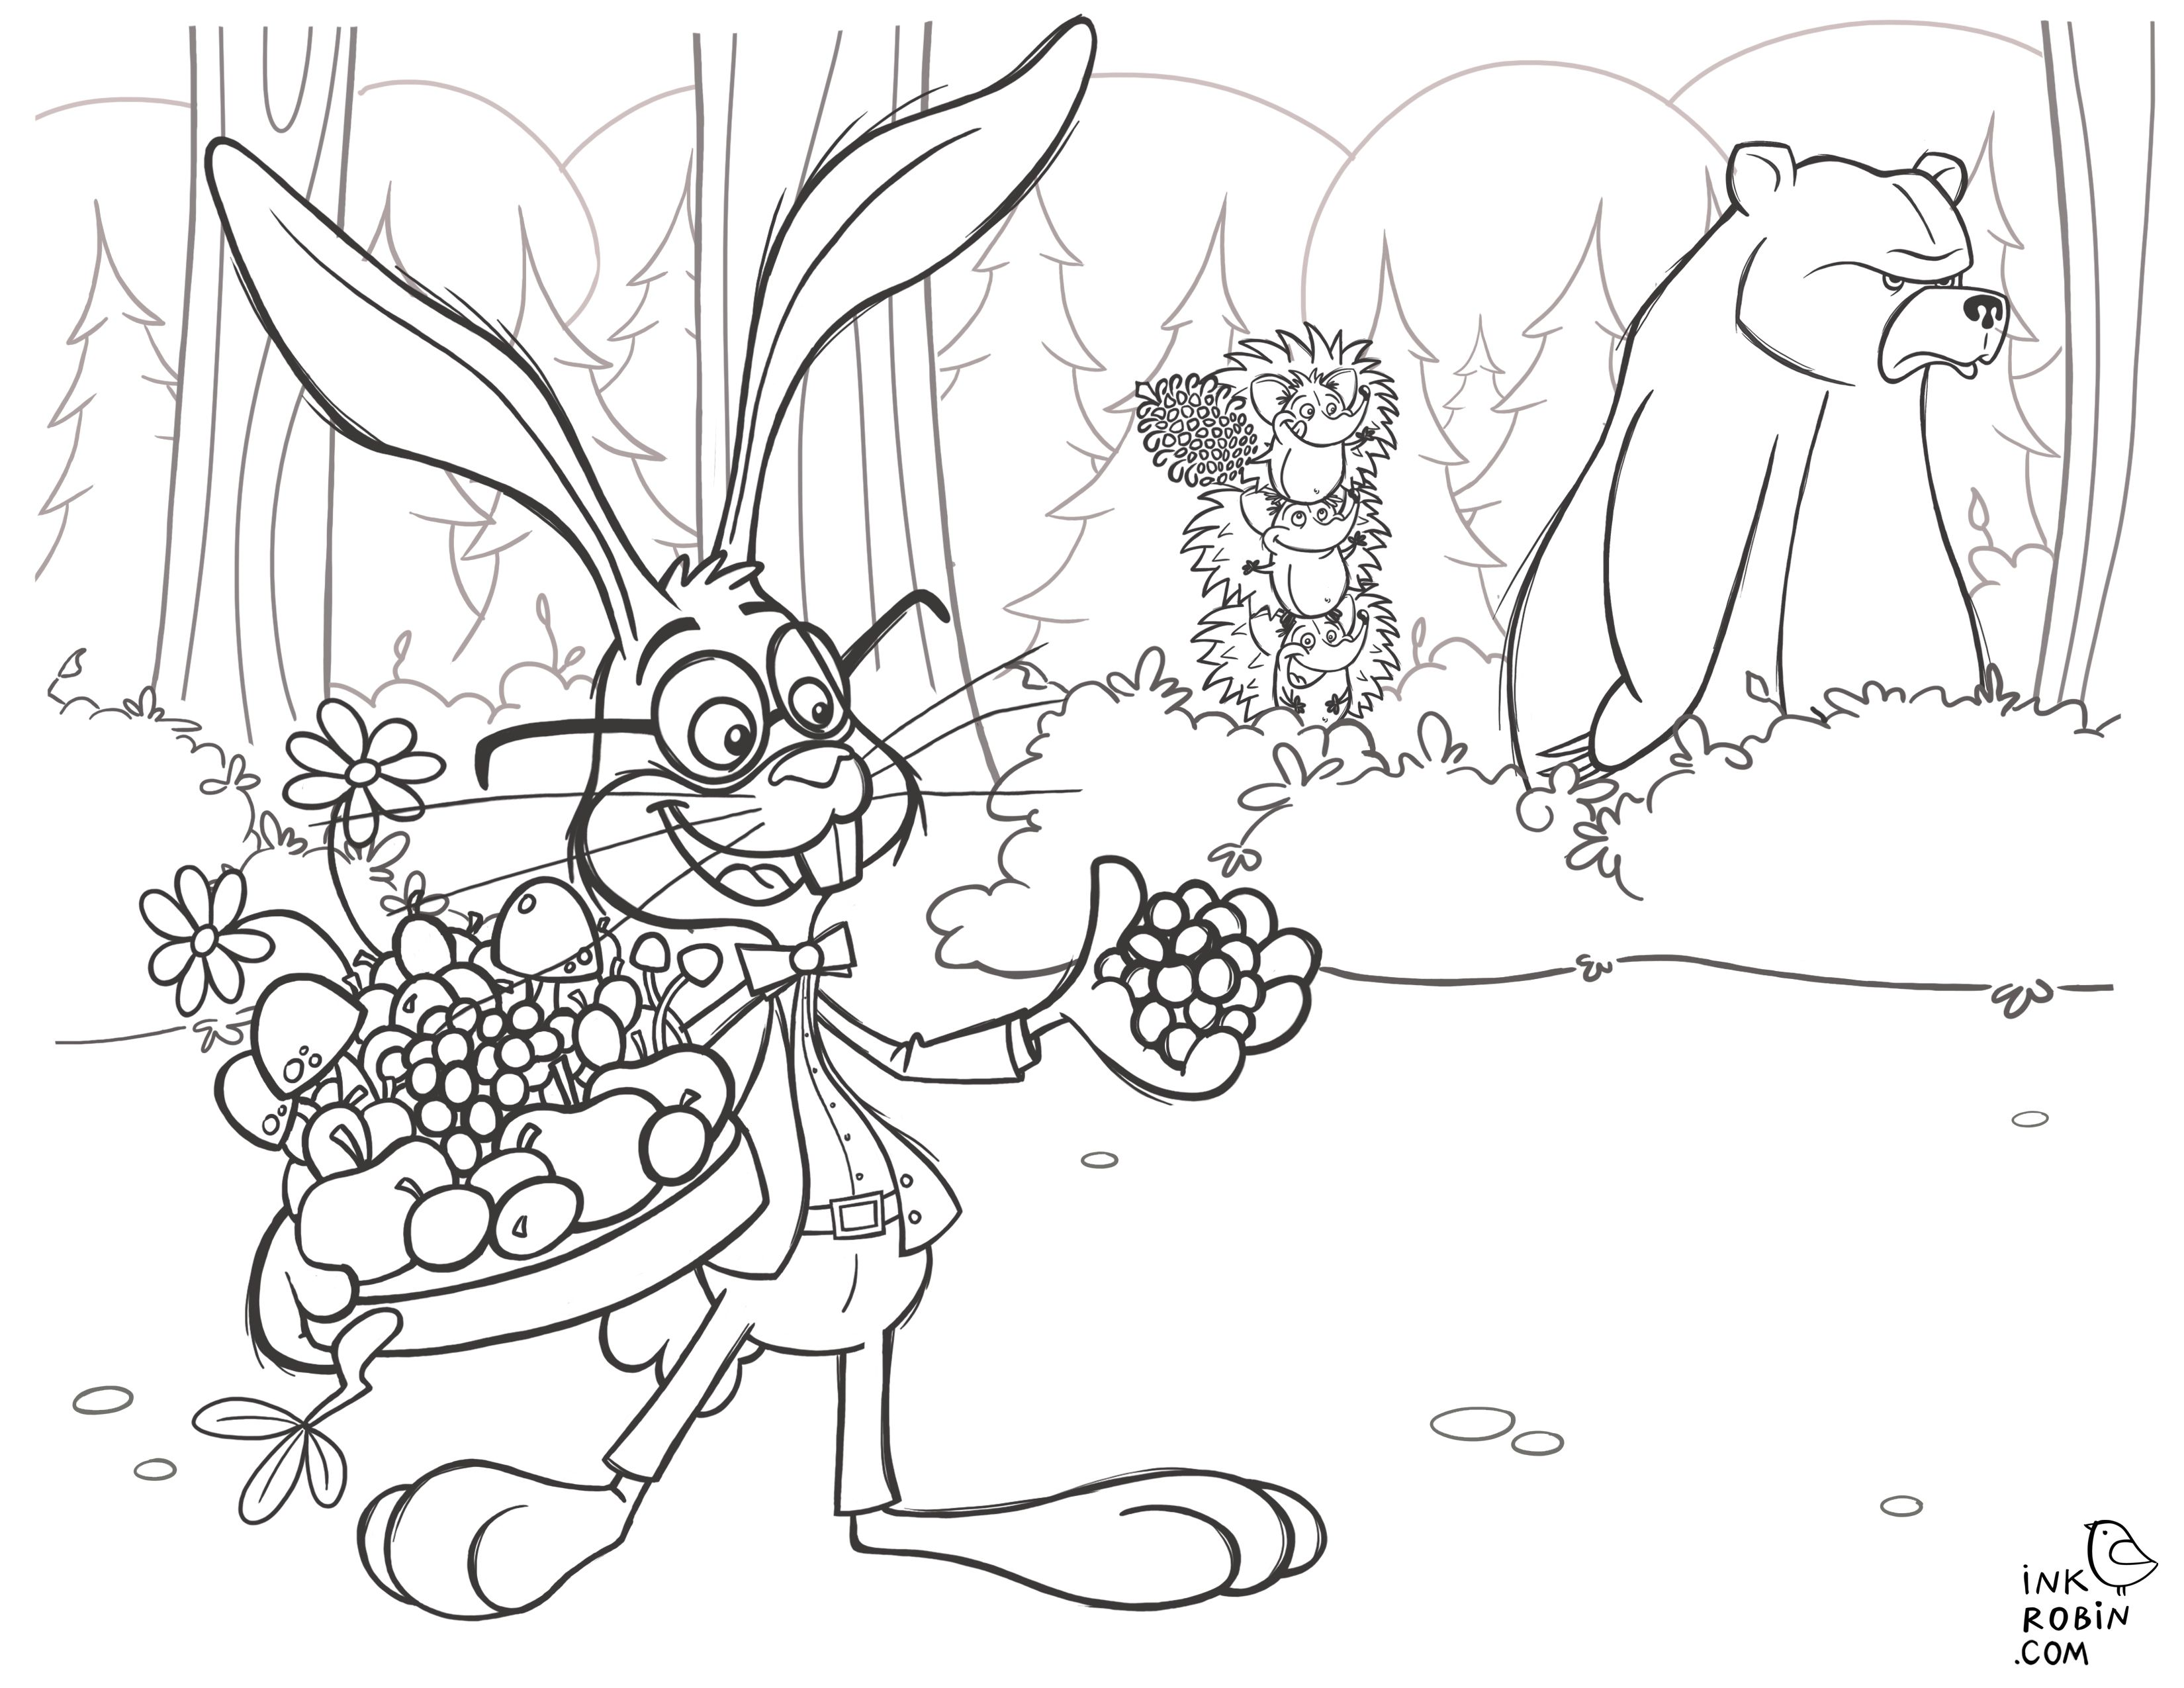 Go Berry Picking With Gordon The Rabbit In This Colouring